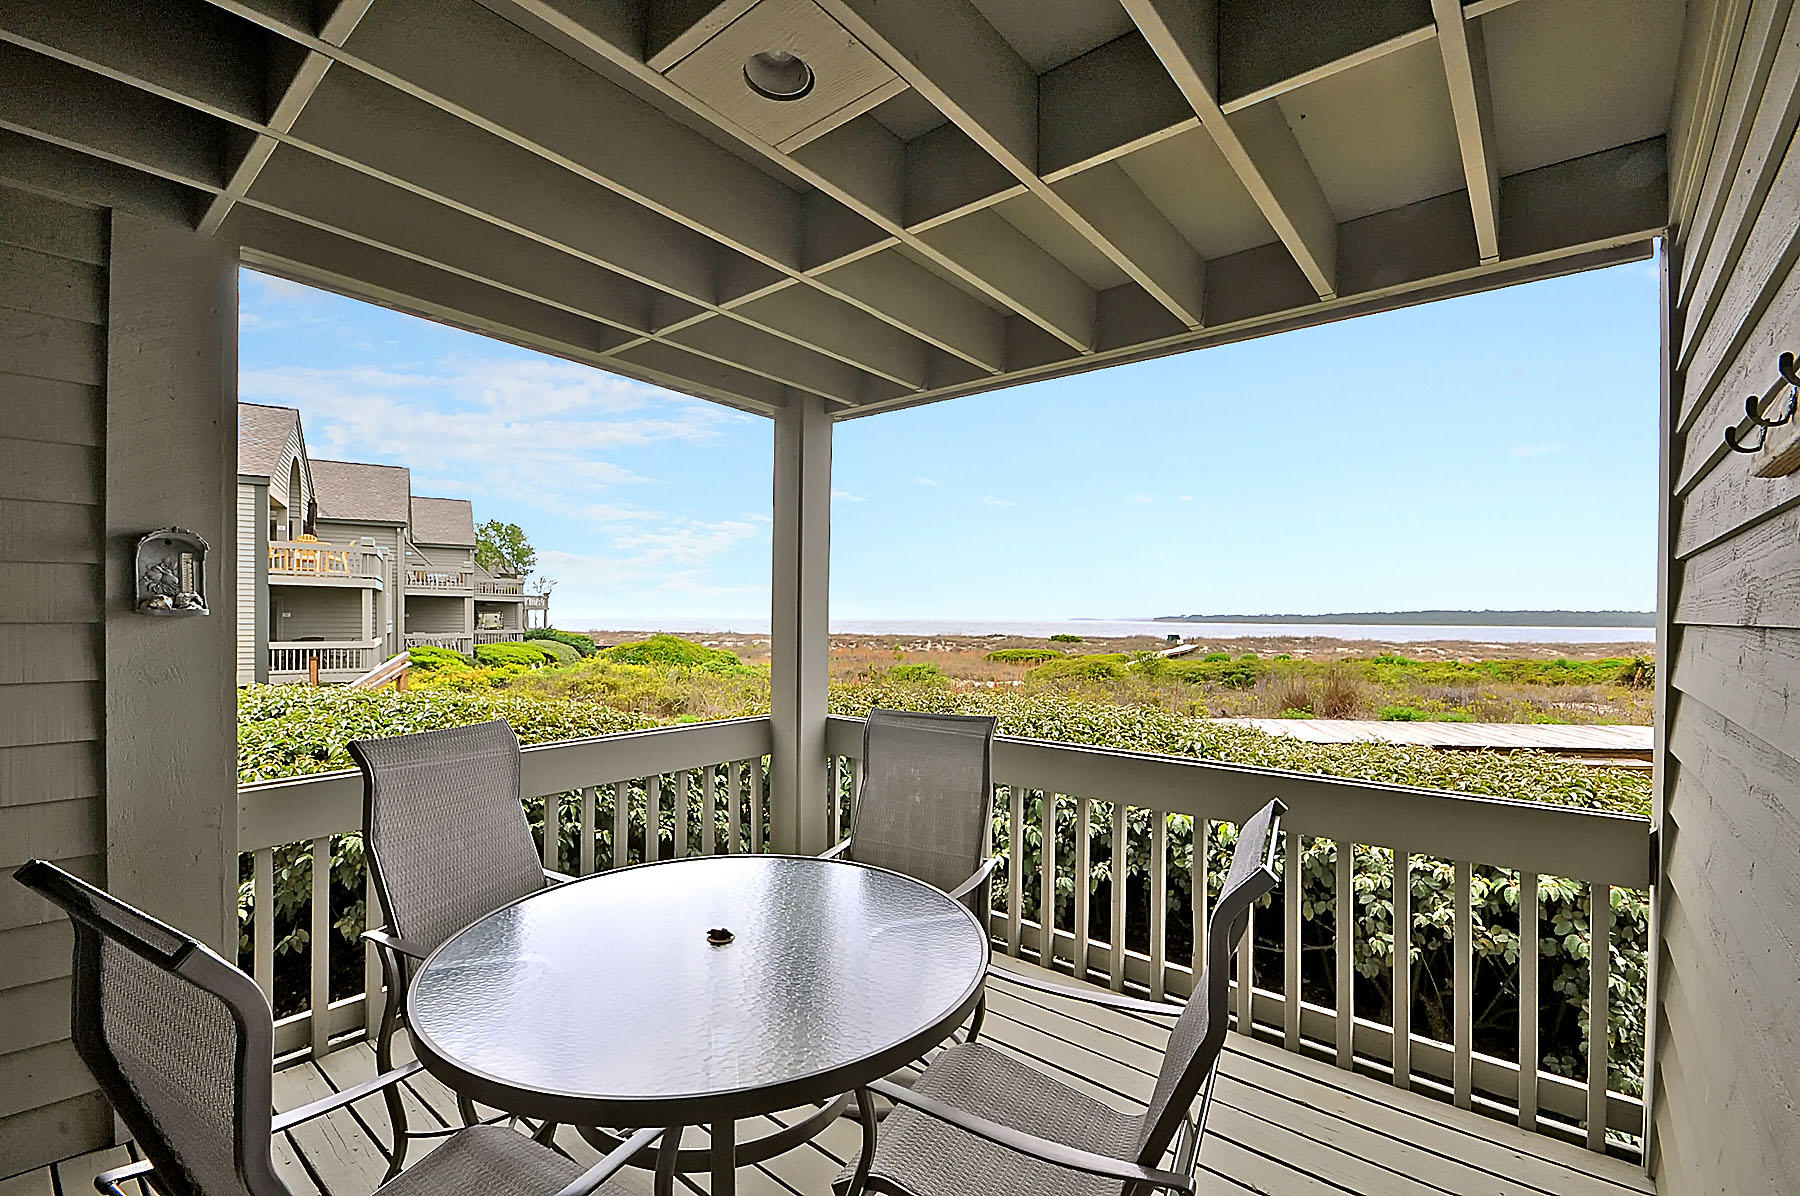 Seabrook Island Homes For Sale - 1357 Pelican Watch, Seabrook Island, SC - 1